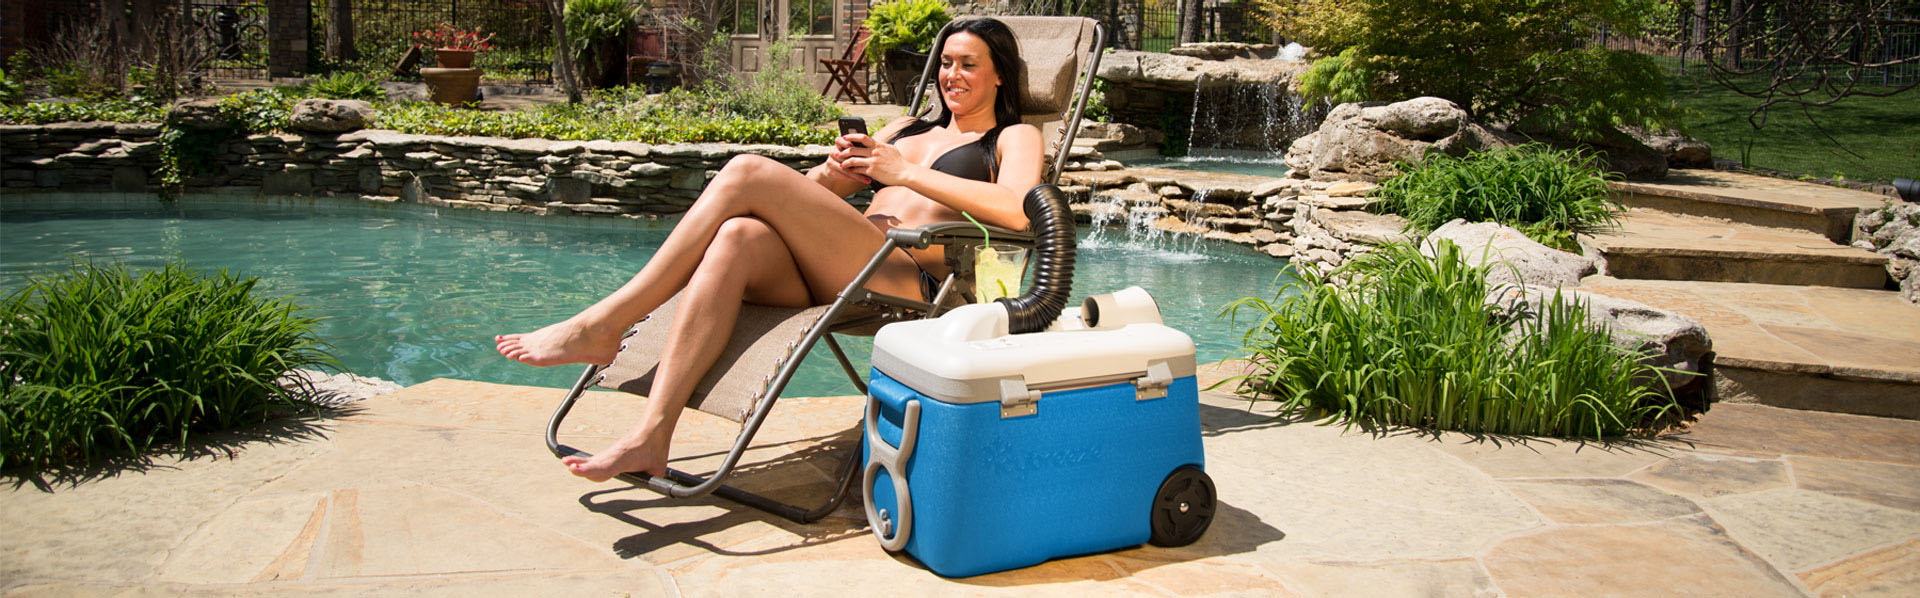 Whether your sitting by the pool, on the beach or at the park you can stay cool with portable AC